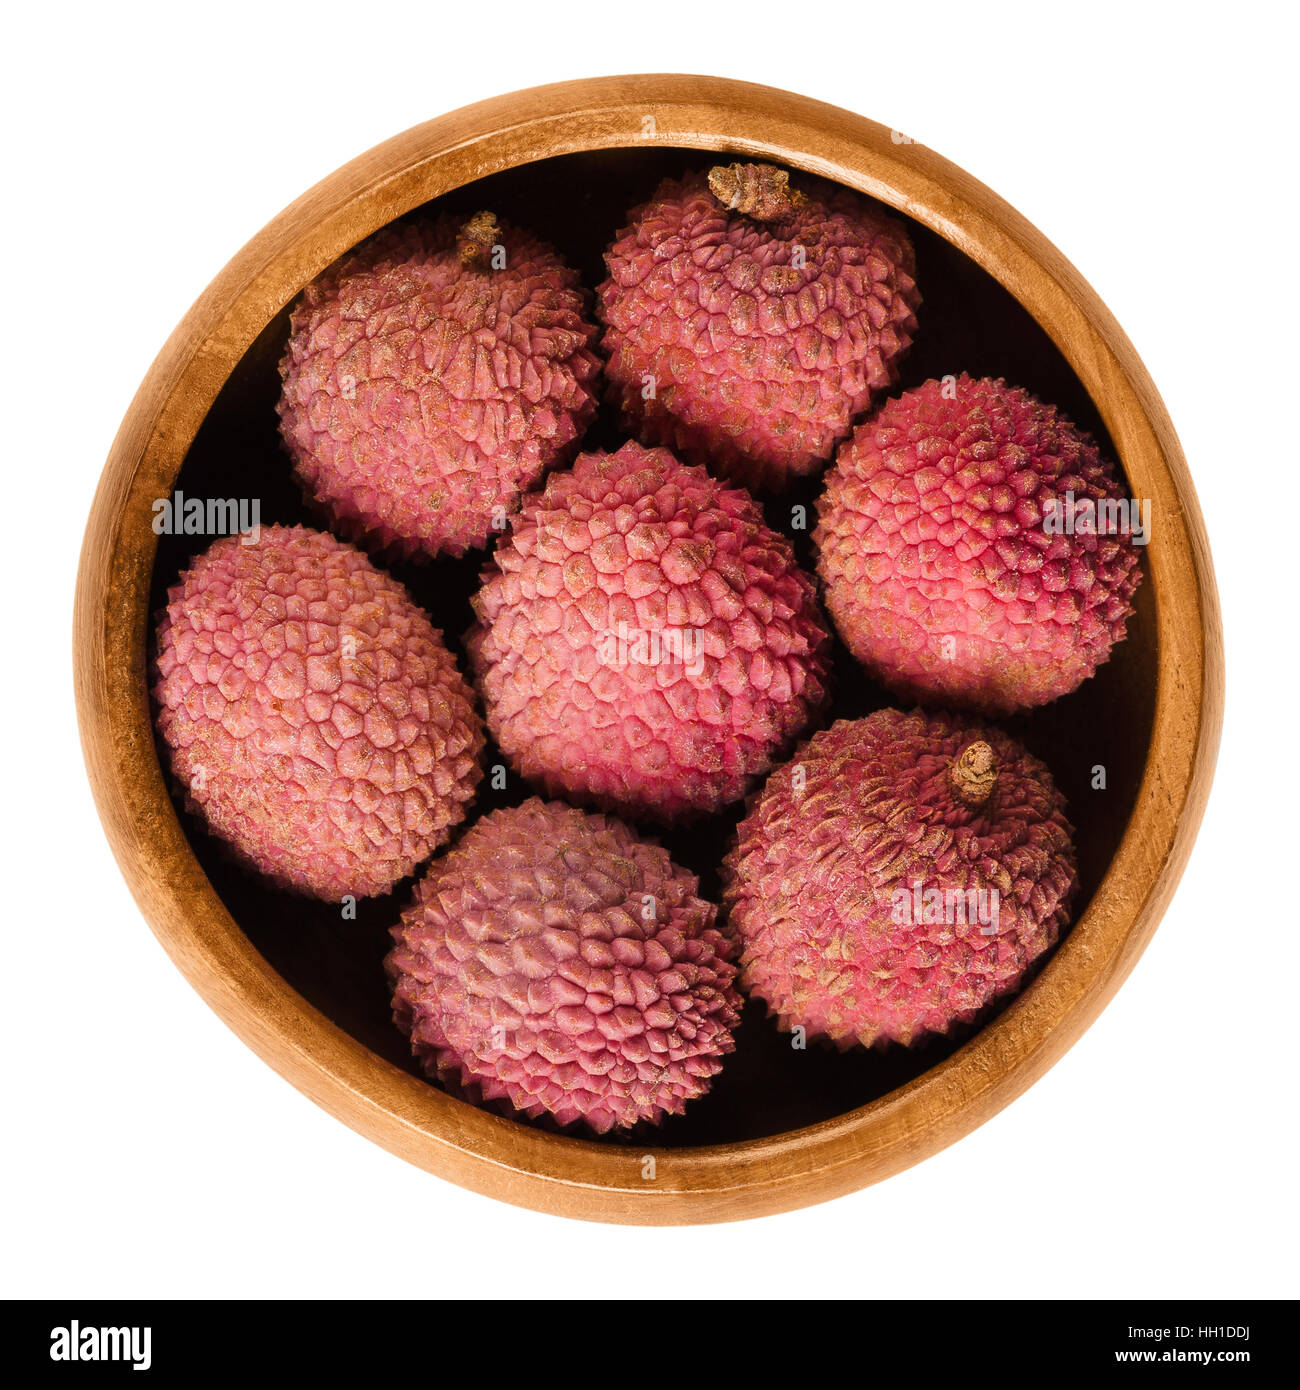 Lychee or litchi fruits in wooden bowl. Unpeeled ripe red Litchi chinensis, also called liechee, liche, lizhi or - Stock Image